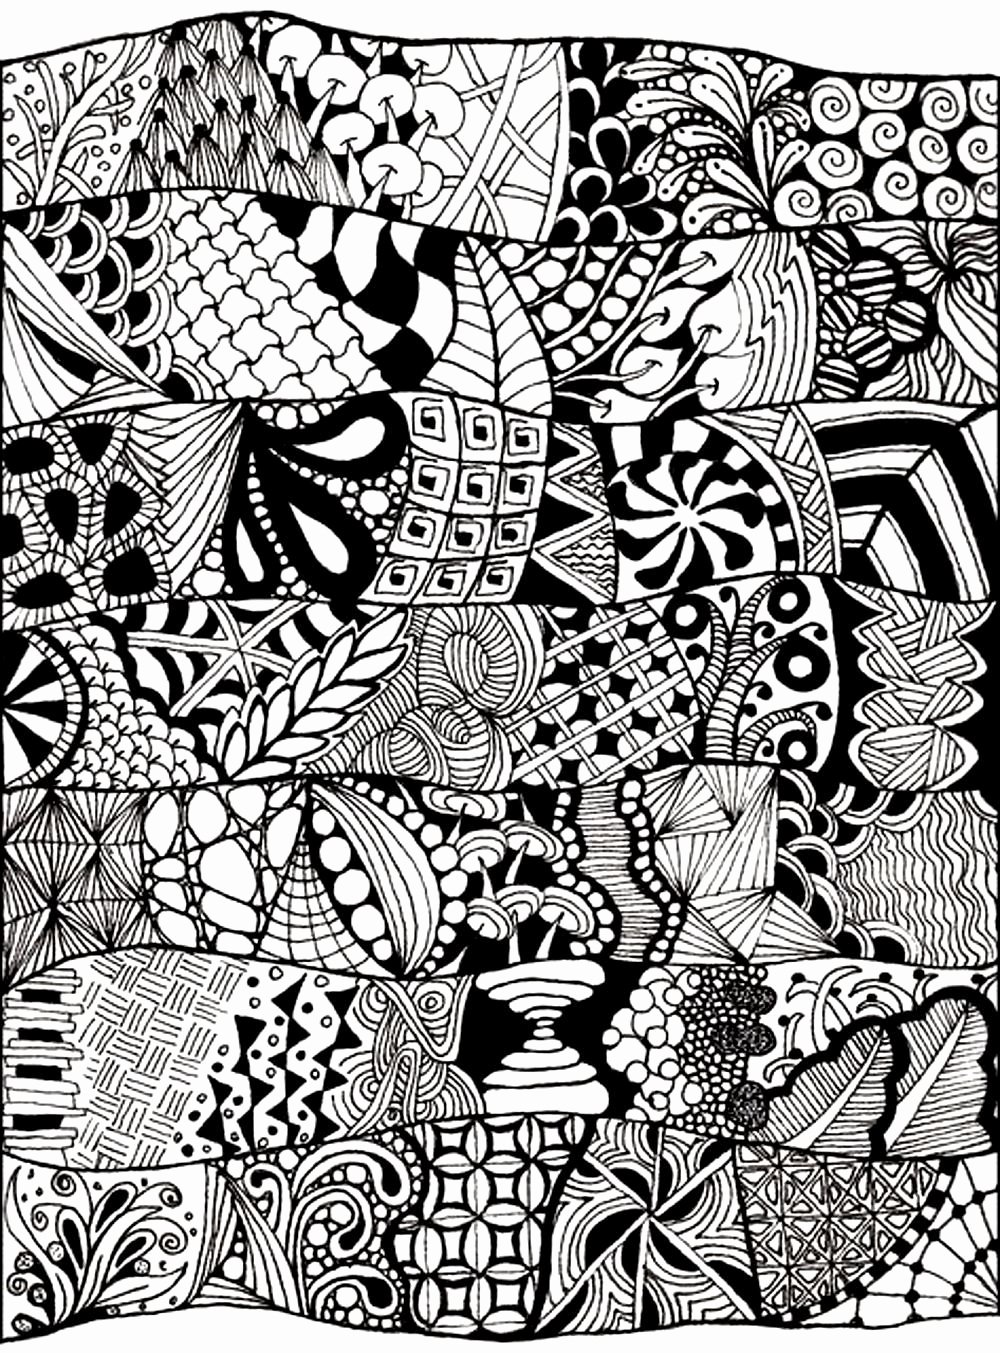 Zentangle Patterns to Print Inspirational Coloring Adult Zen Anti Stress Abstract to Print From the